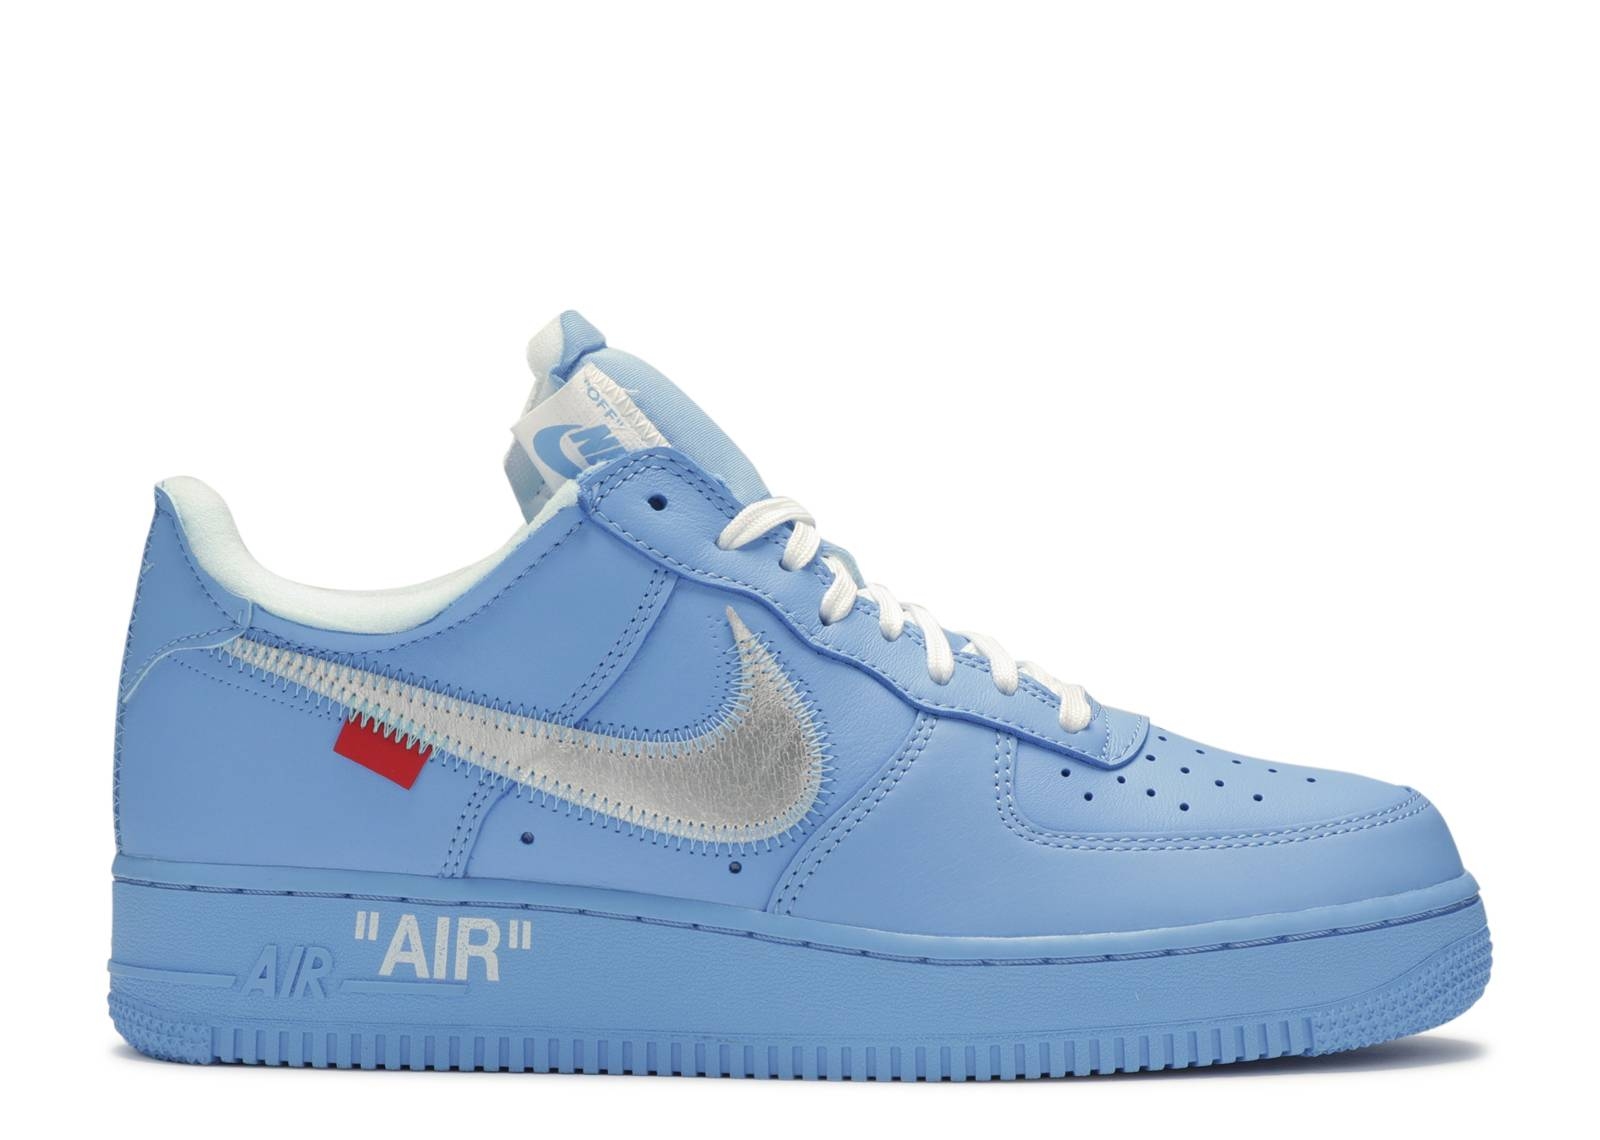 Royaume-Uni disponibilité d3274 16c8f air force 1 '07 virgil